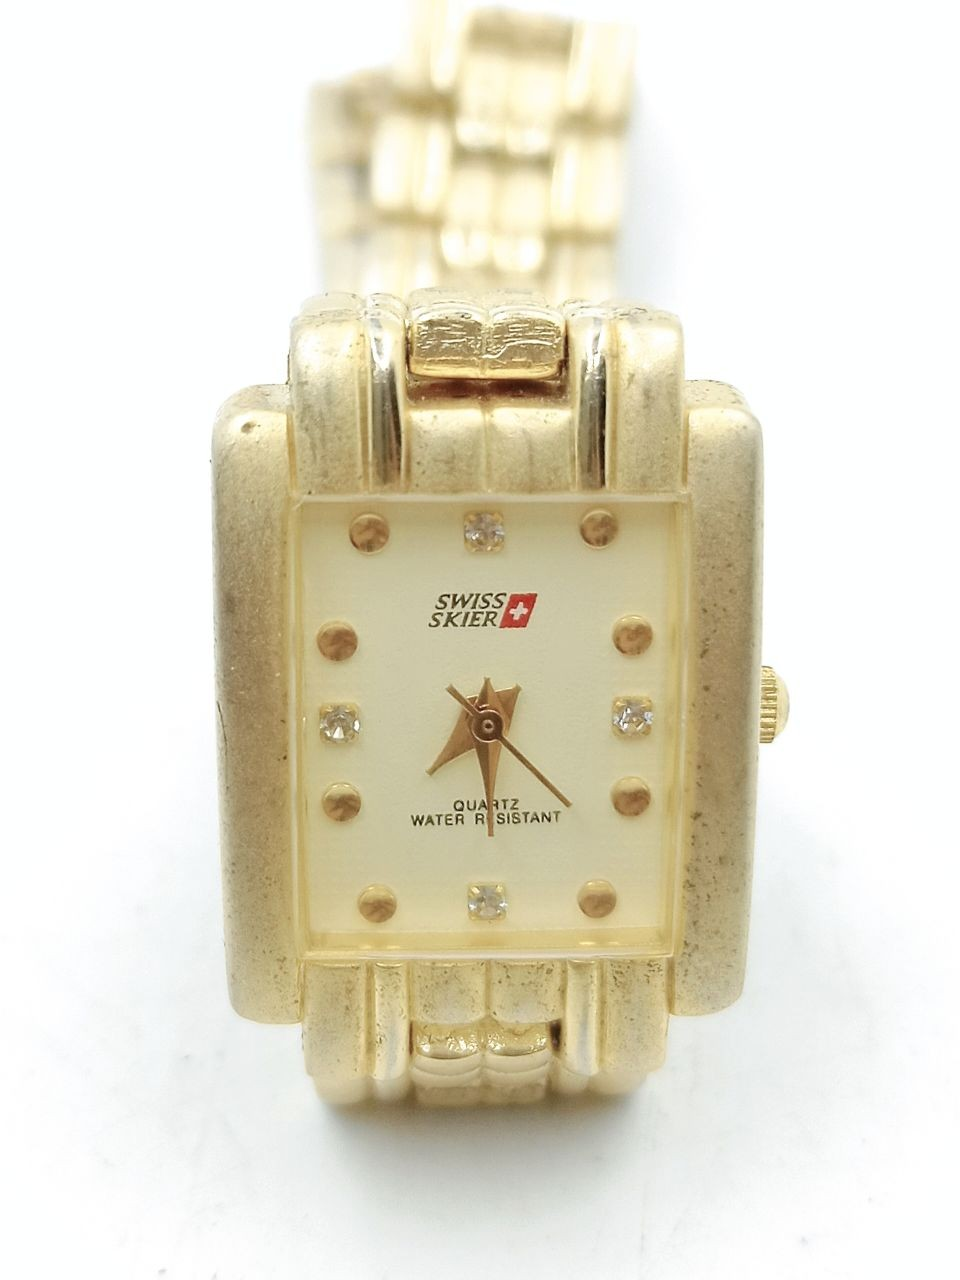 SWISS SKIER 3331 gold plated watch